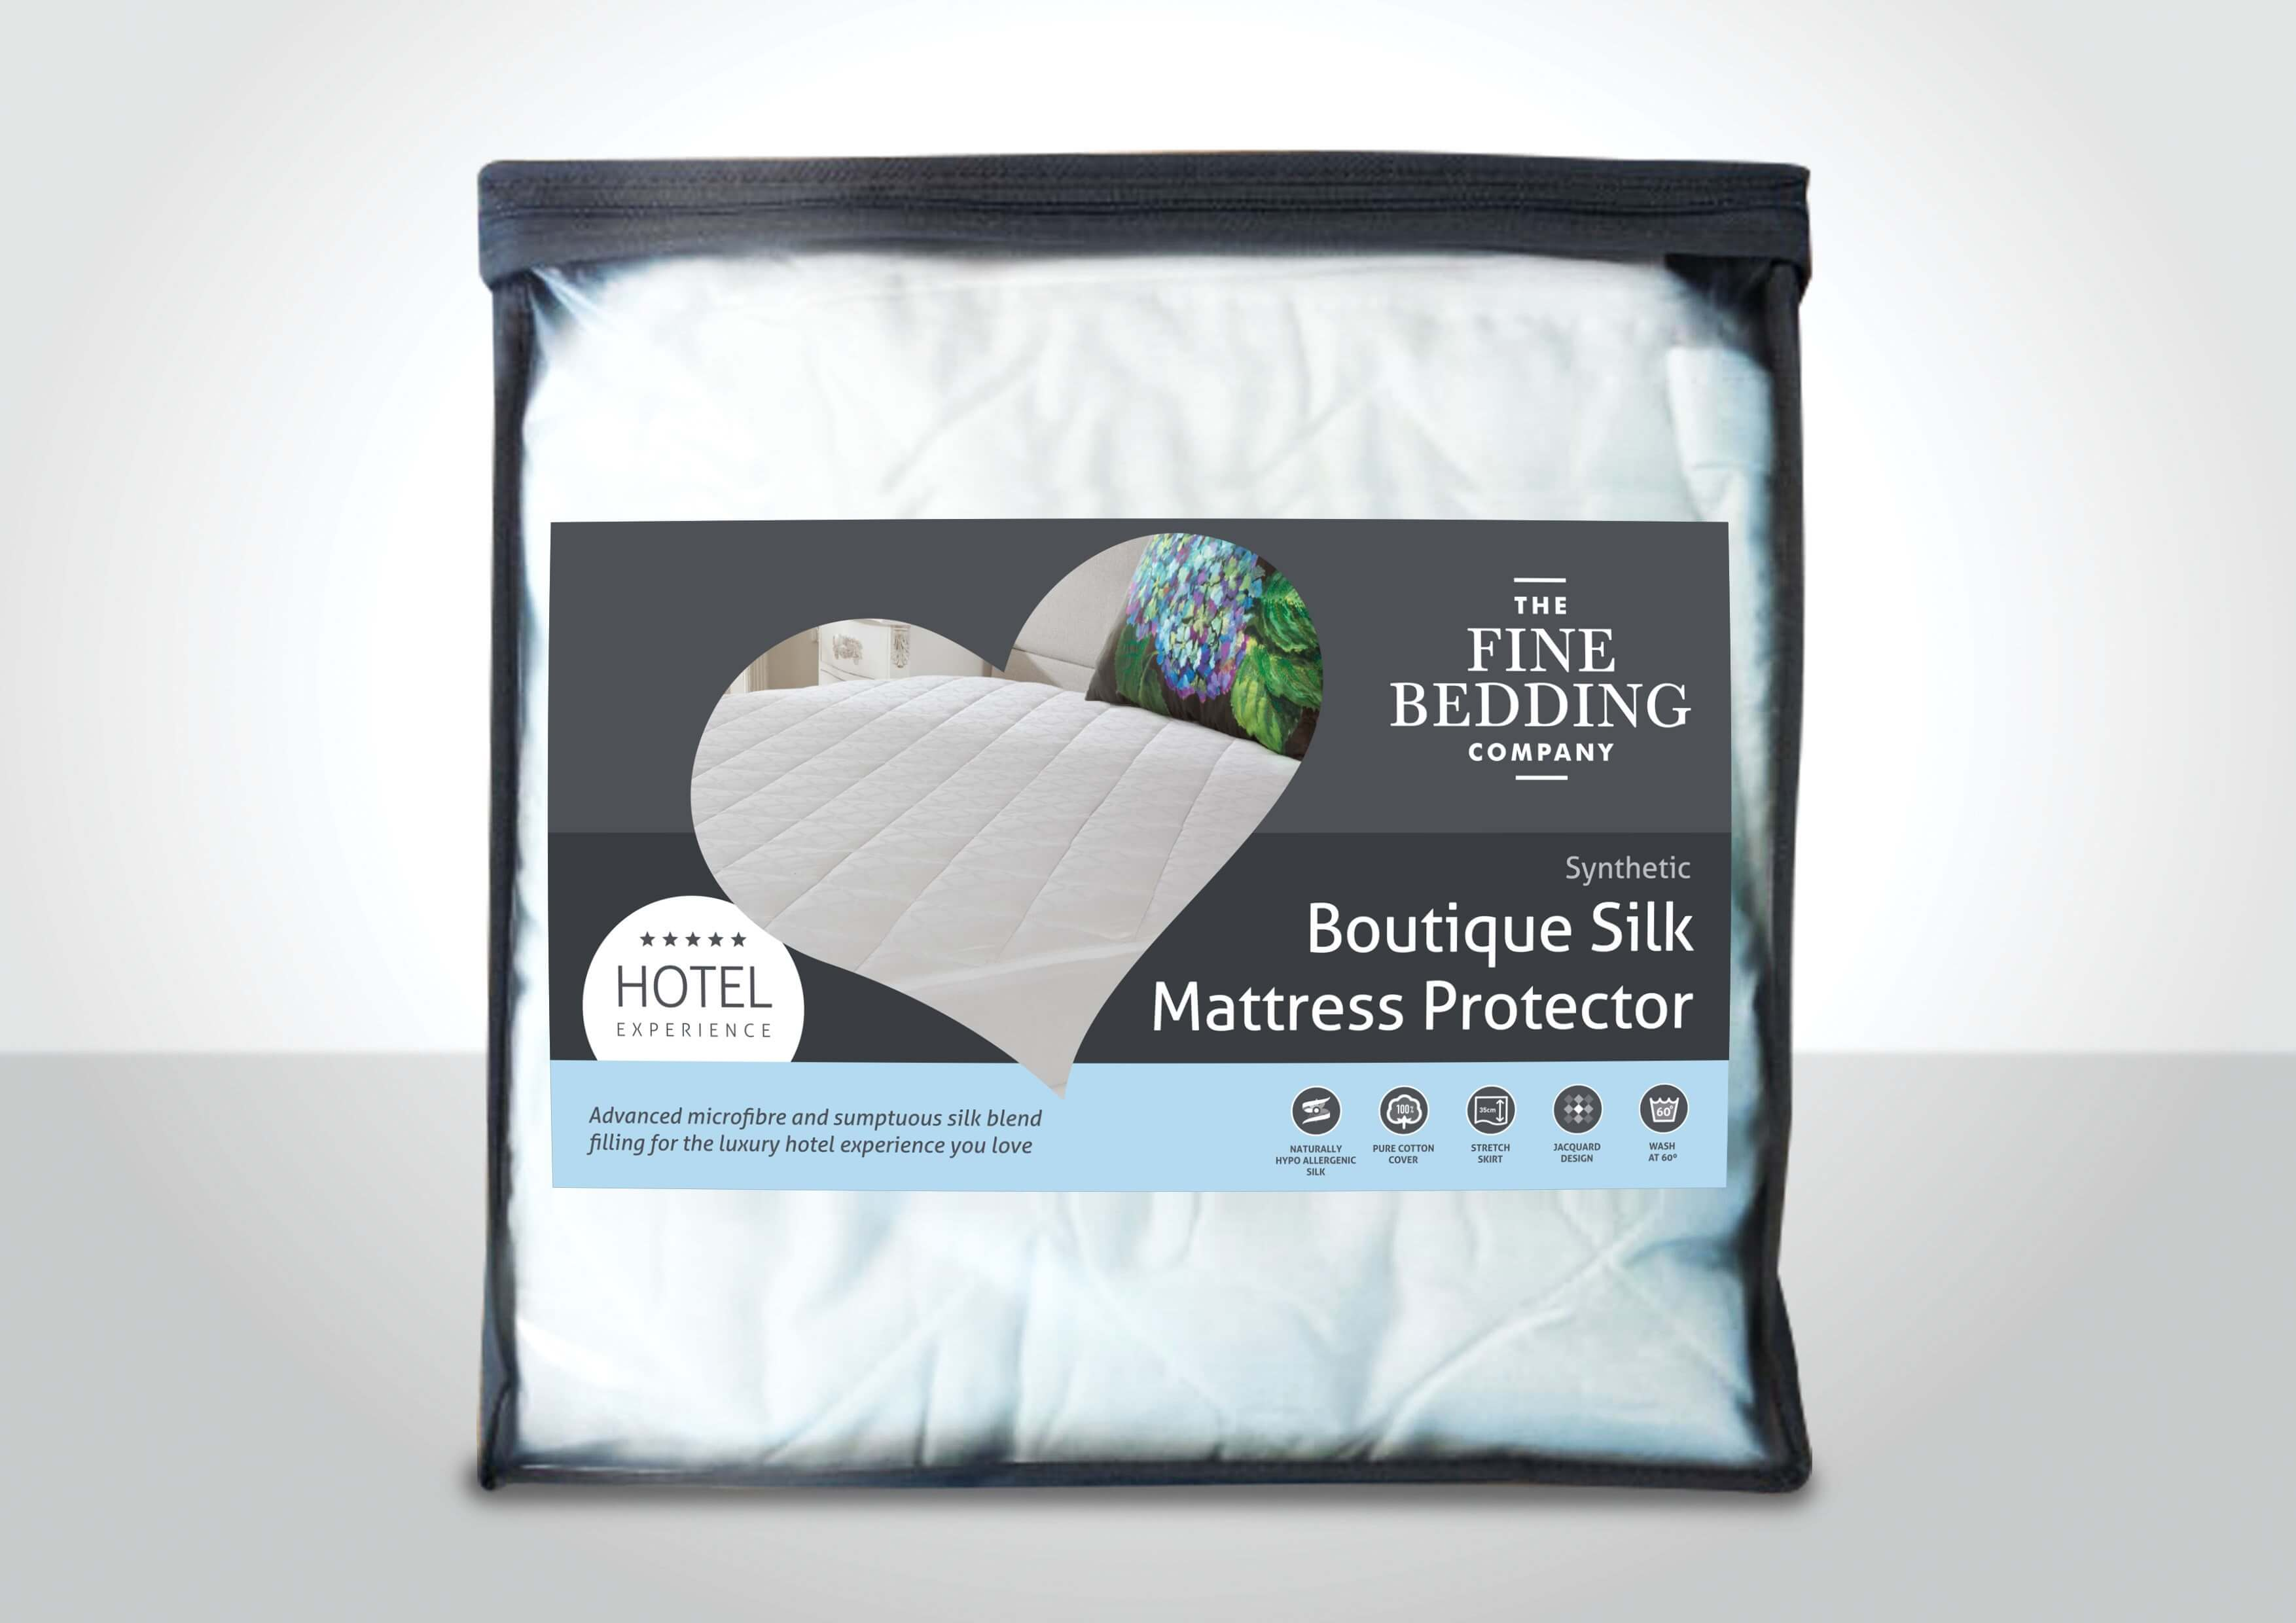 Boutique Silk Mattress Protector - The Fine Bedding Company